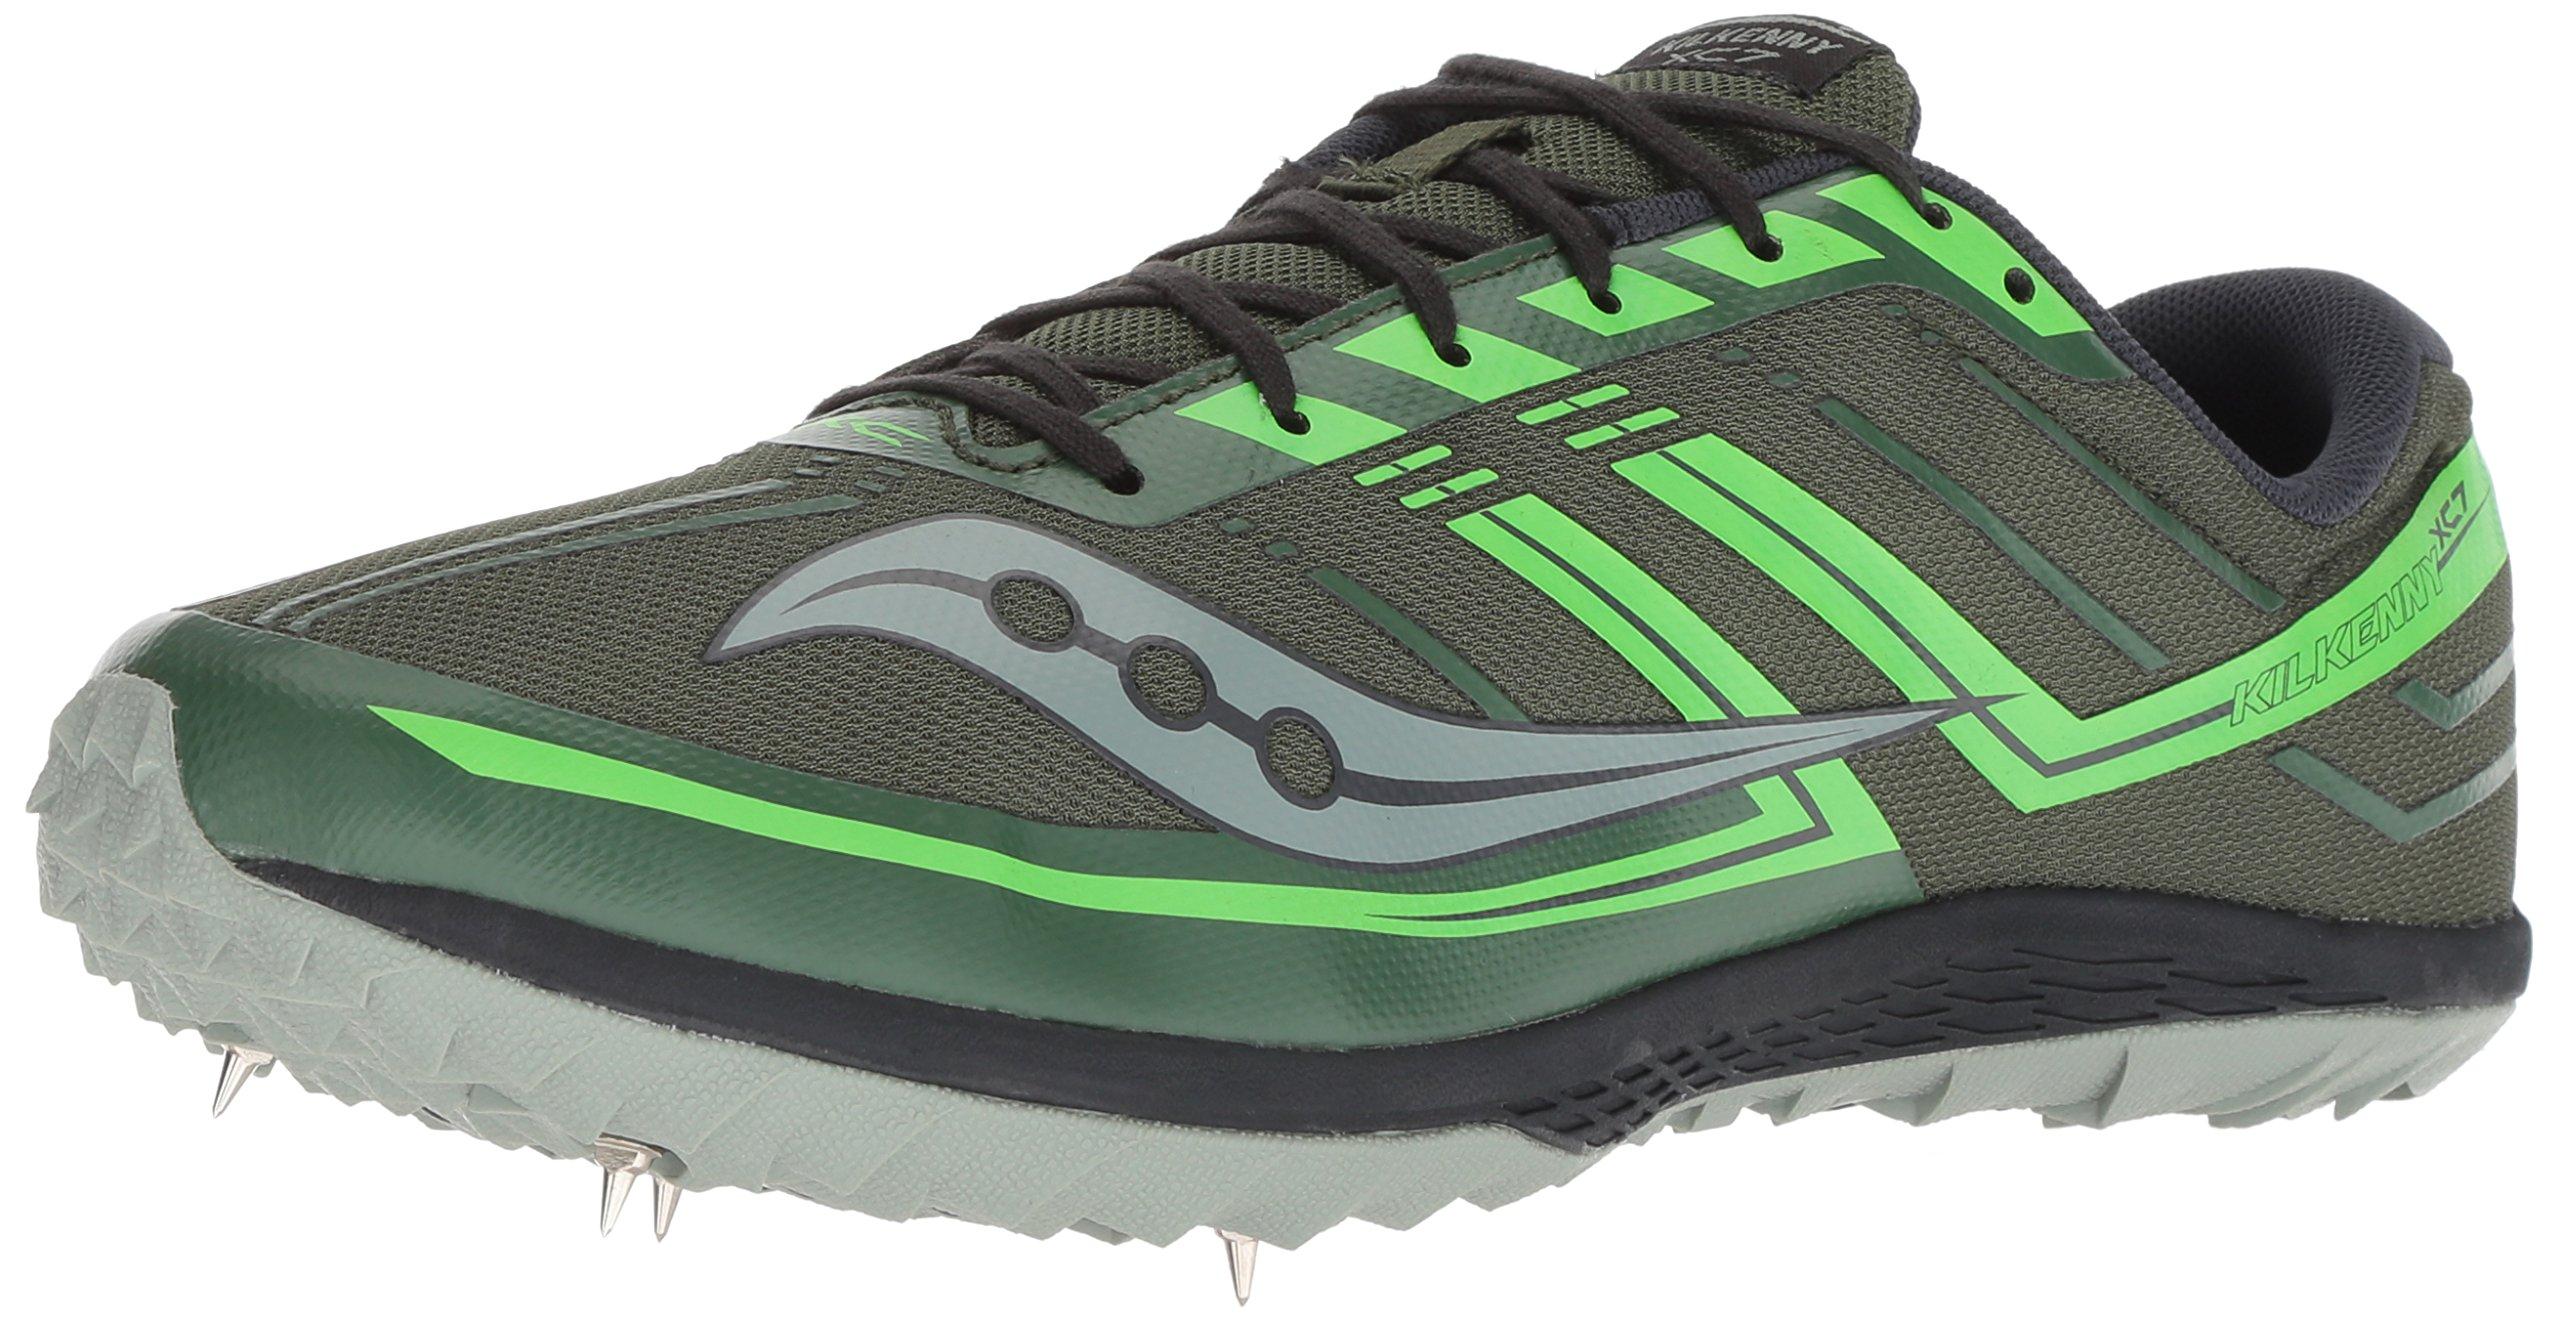 Saucony Men's Kilkenny XC 7 Cross Country Running Shoe, Green/Slime, 11.5 M US